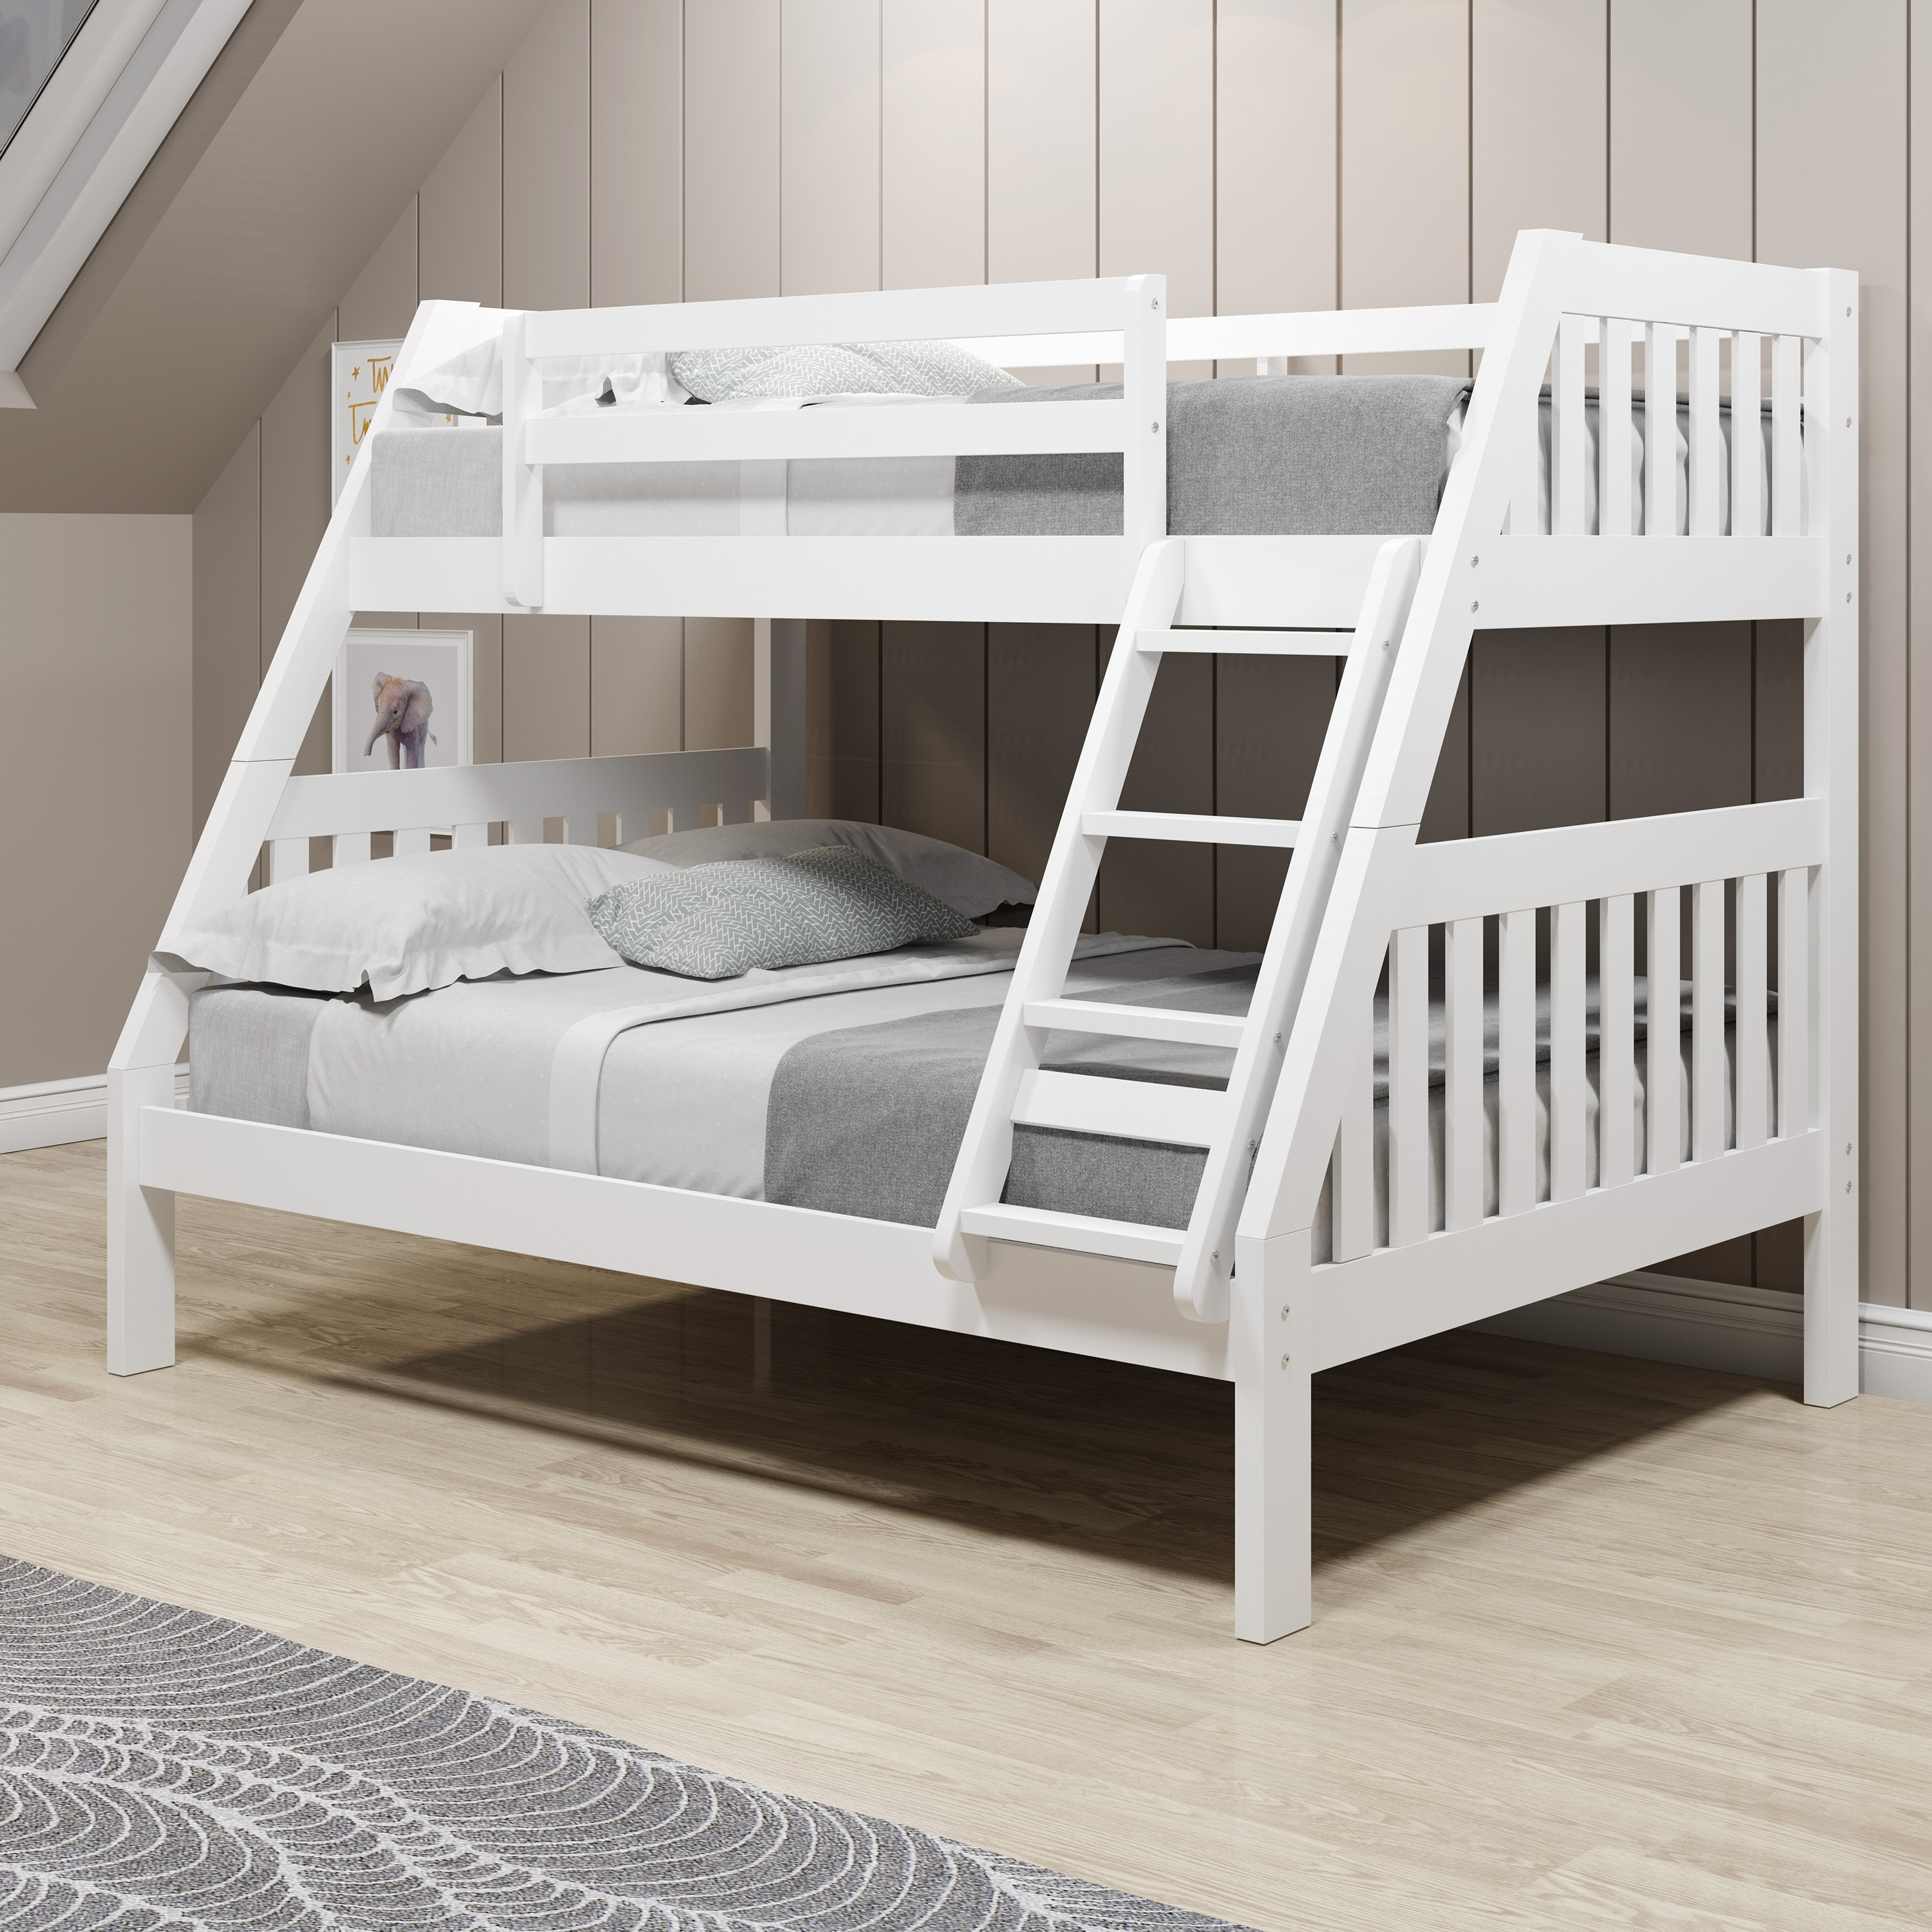 Picture of: Twin Over Full White Pine Wood Mission Bunk Bed Overstock 31226782 Standalone Bunk White